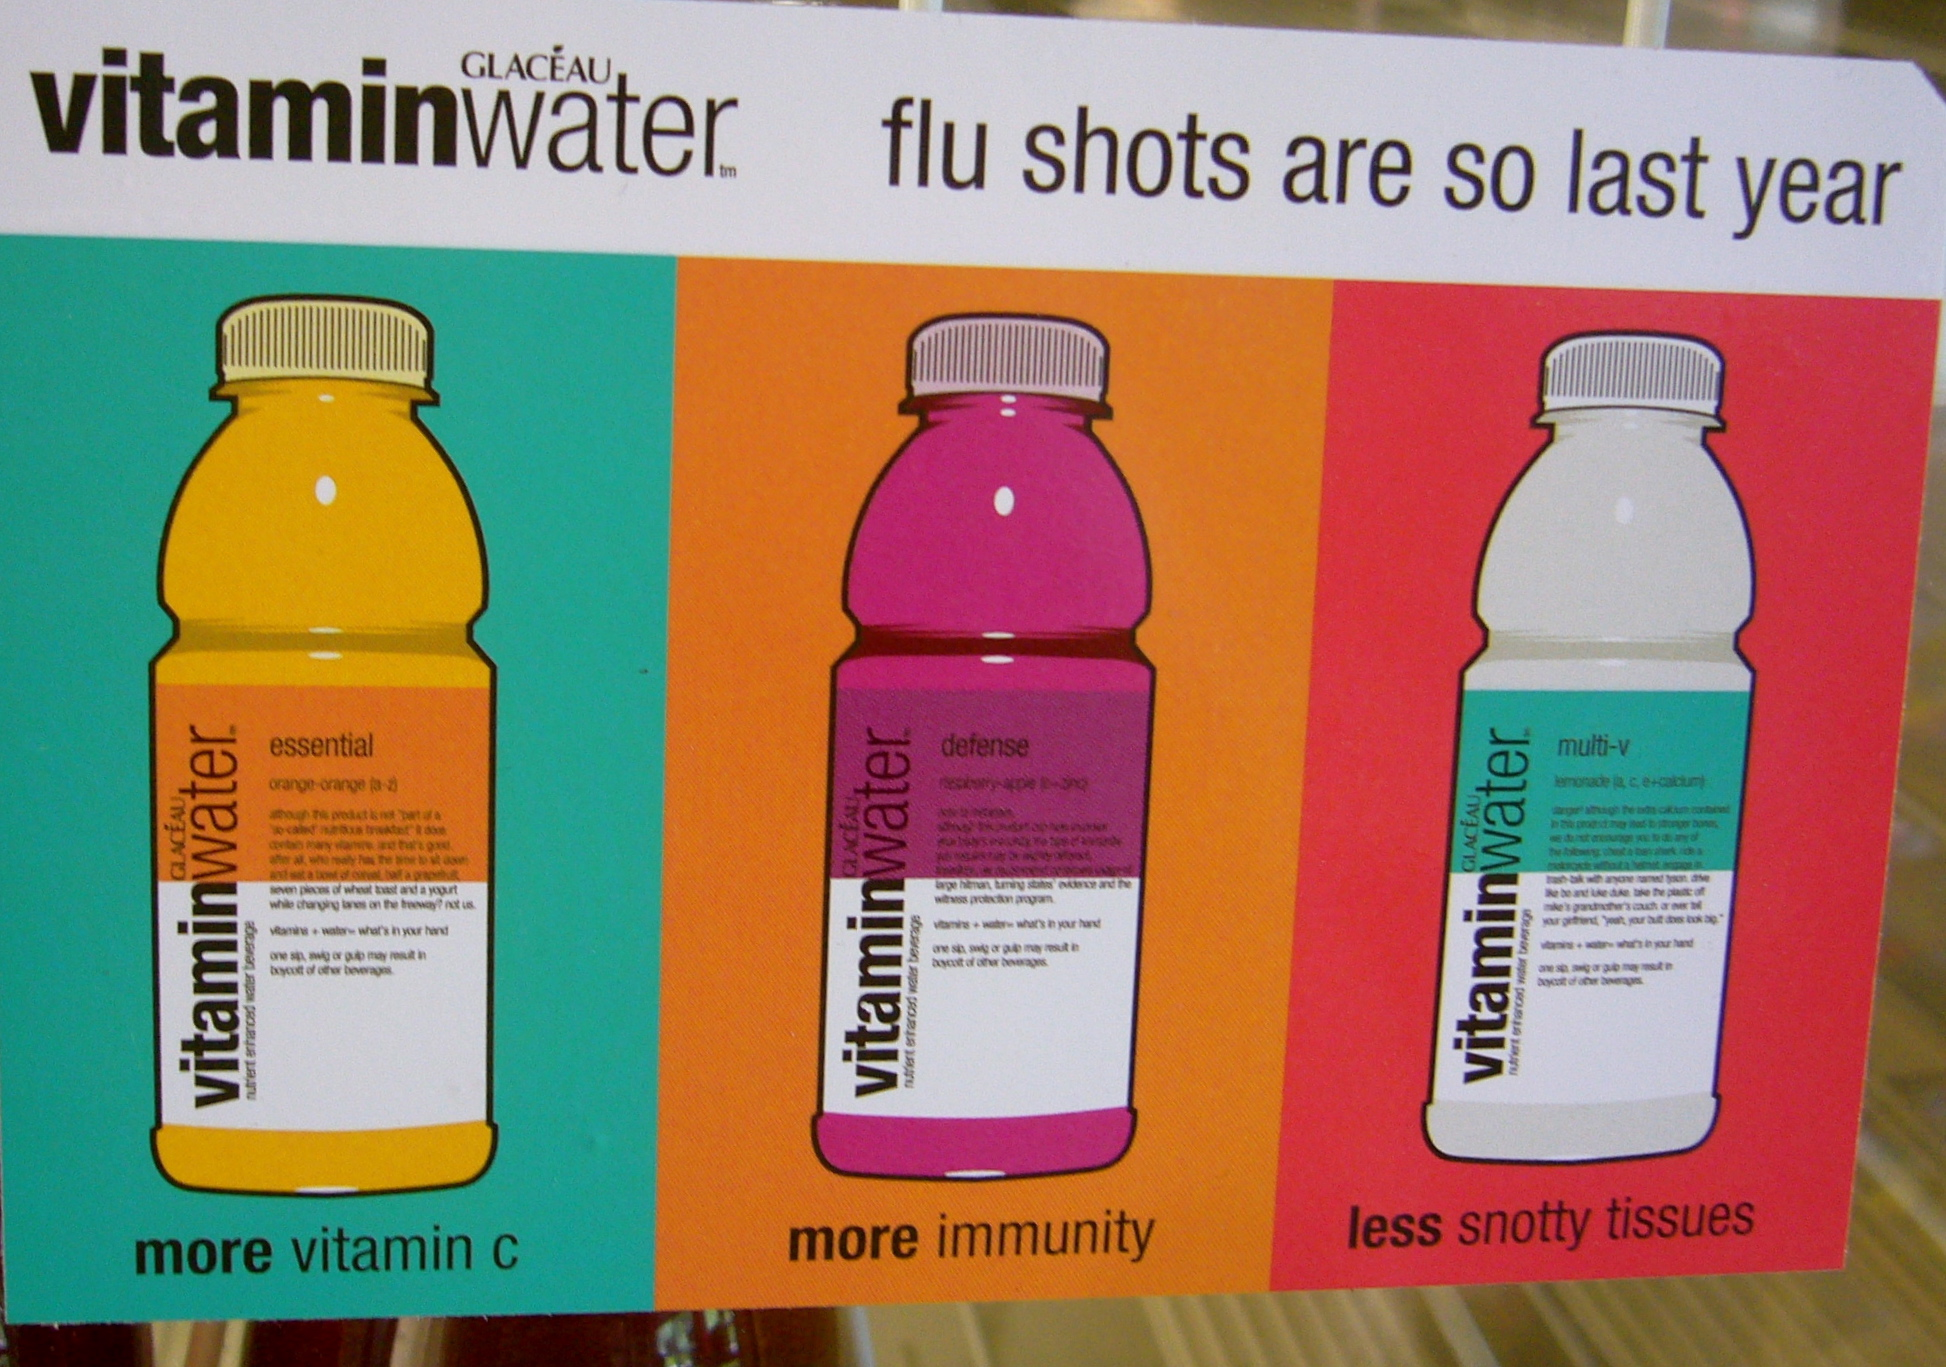 VitaminWater  Ethically Healthy Unethical Ads Example